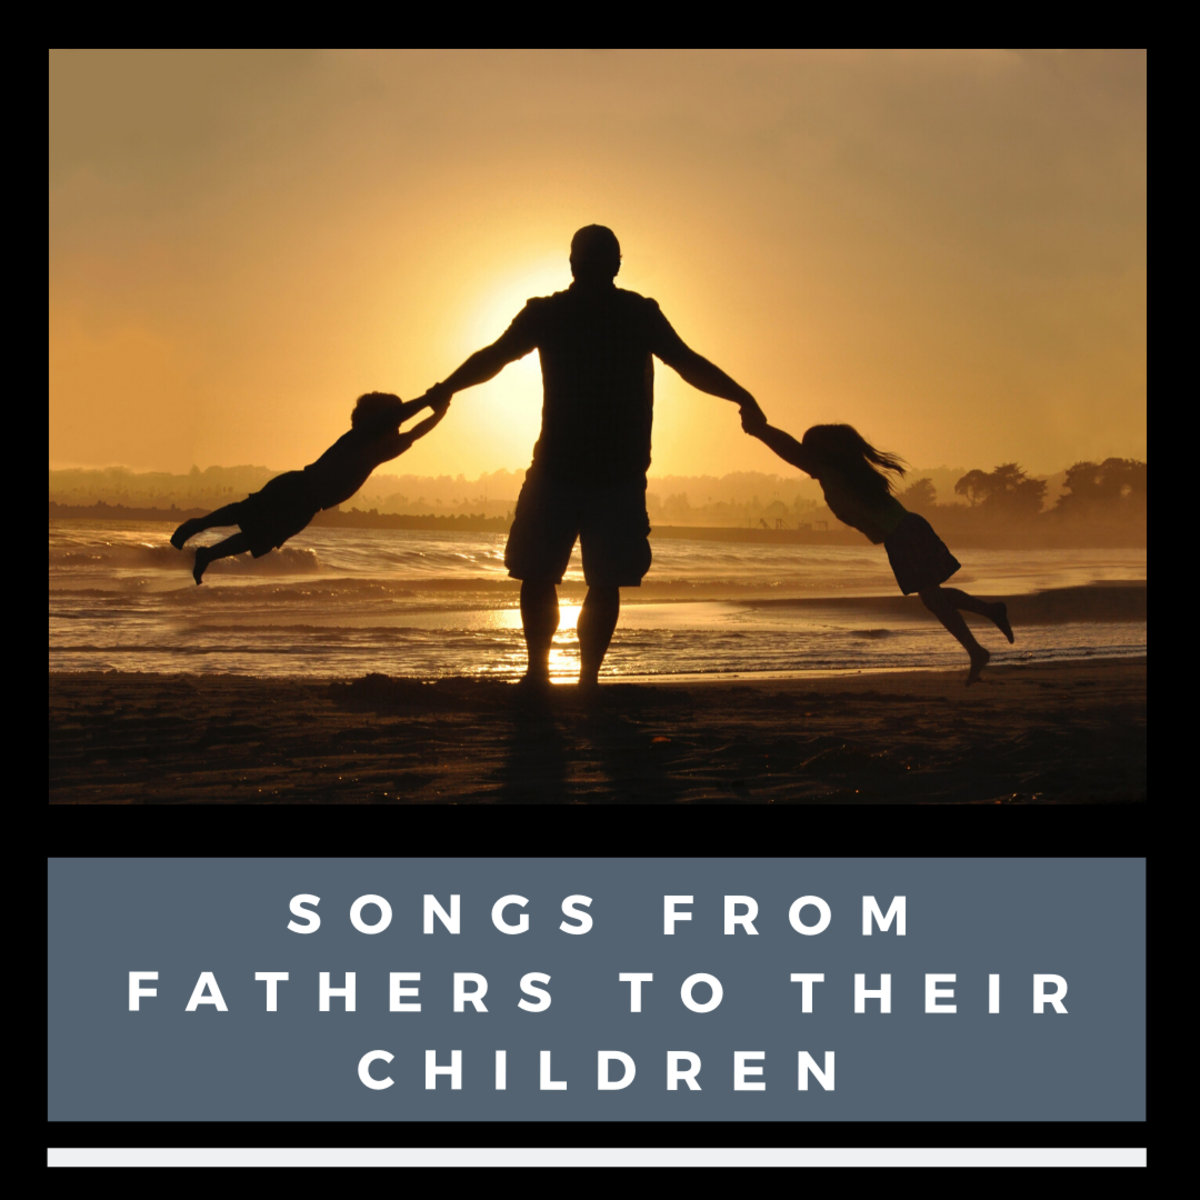 Famous Songs About Dads and Children